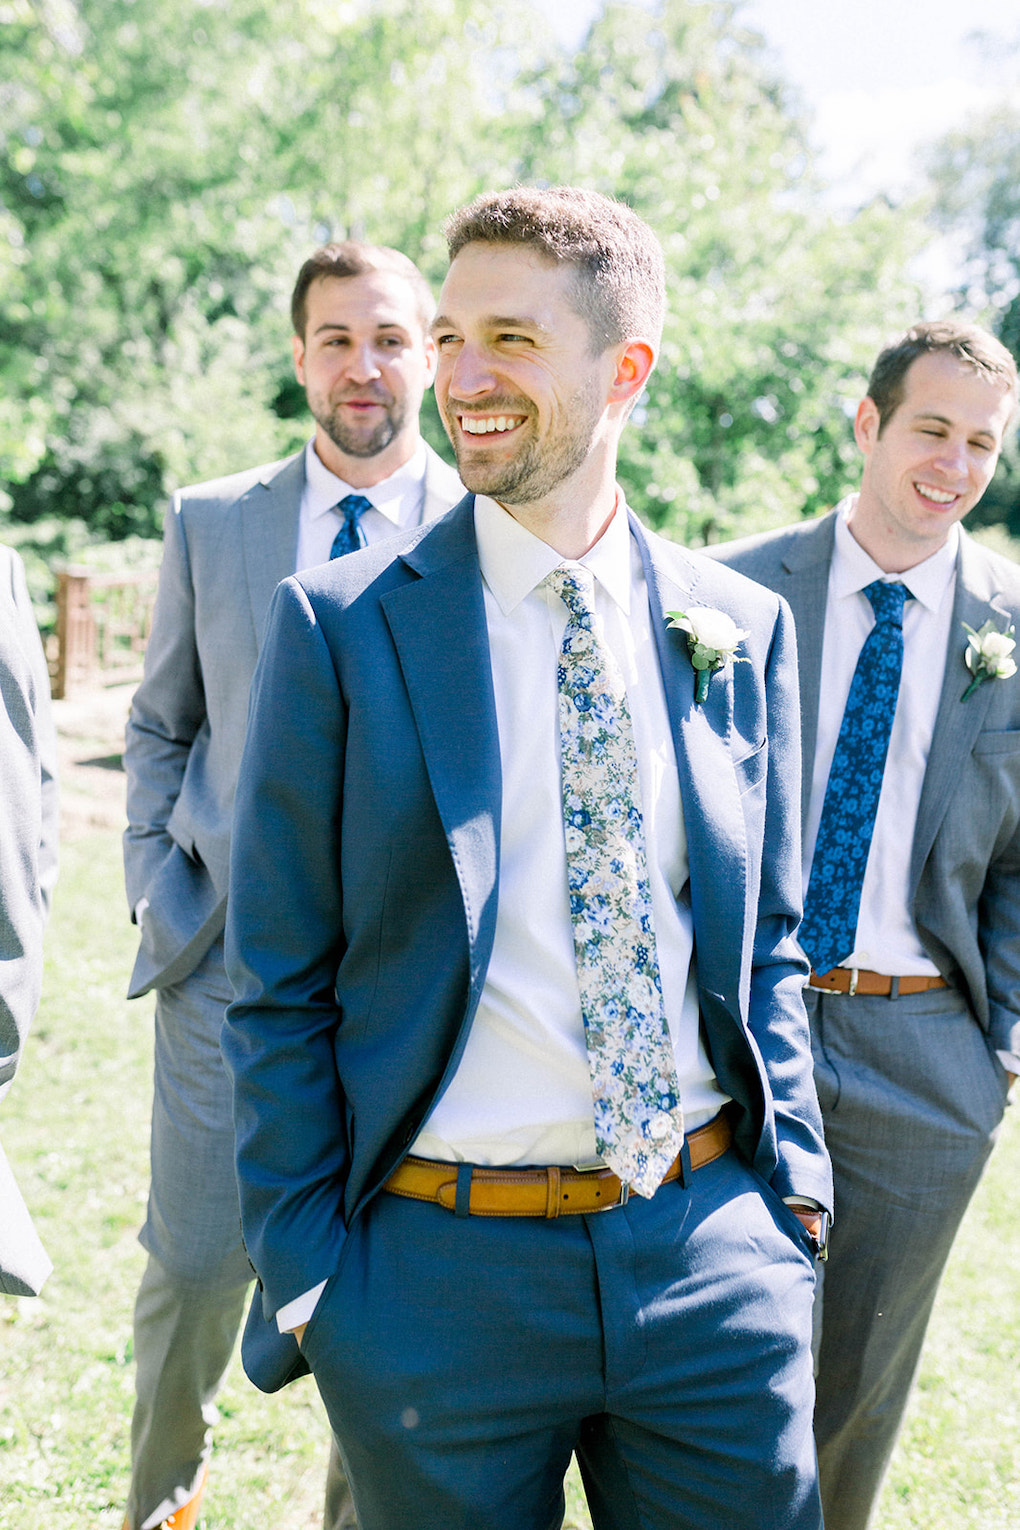 Floral Tie for Groom: Pittsburgh Botanic Garden wedding planned by Exhale Events. See more wedding inspiration at exhale-events.com!